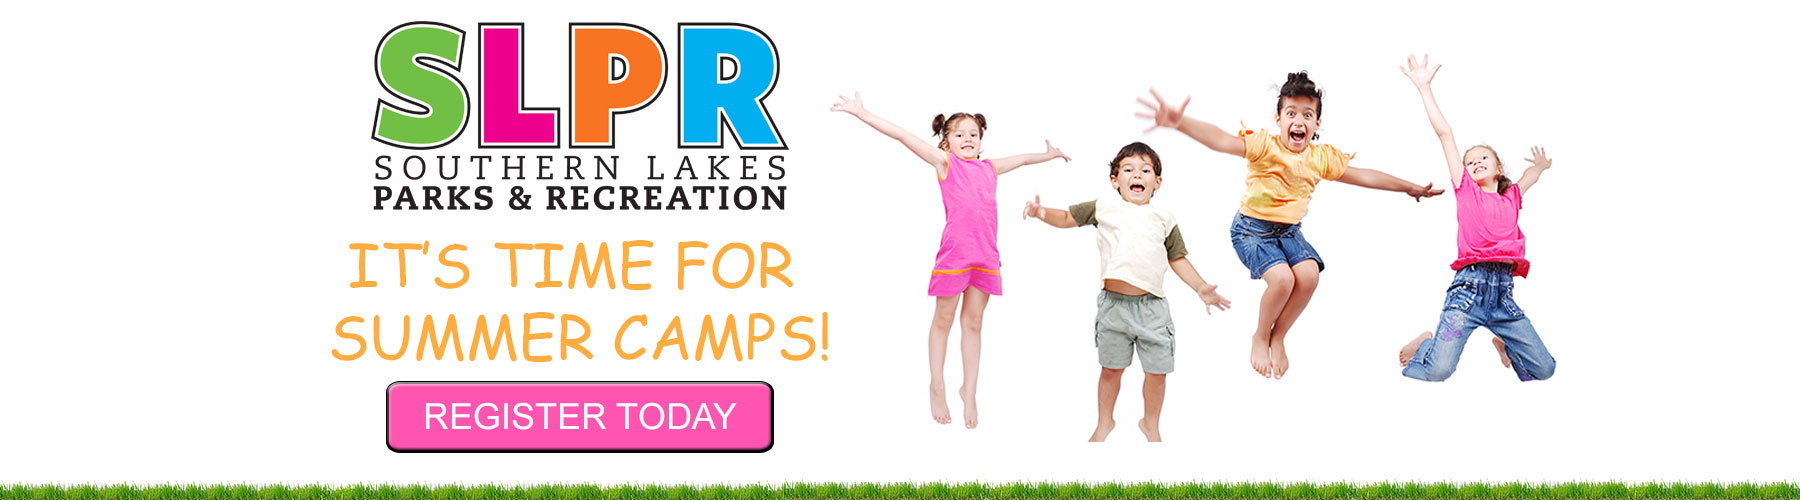 Check out the SLPR Summer Camps